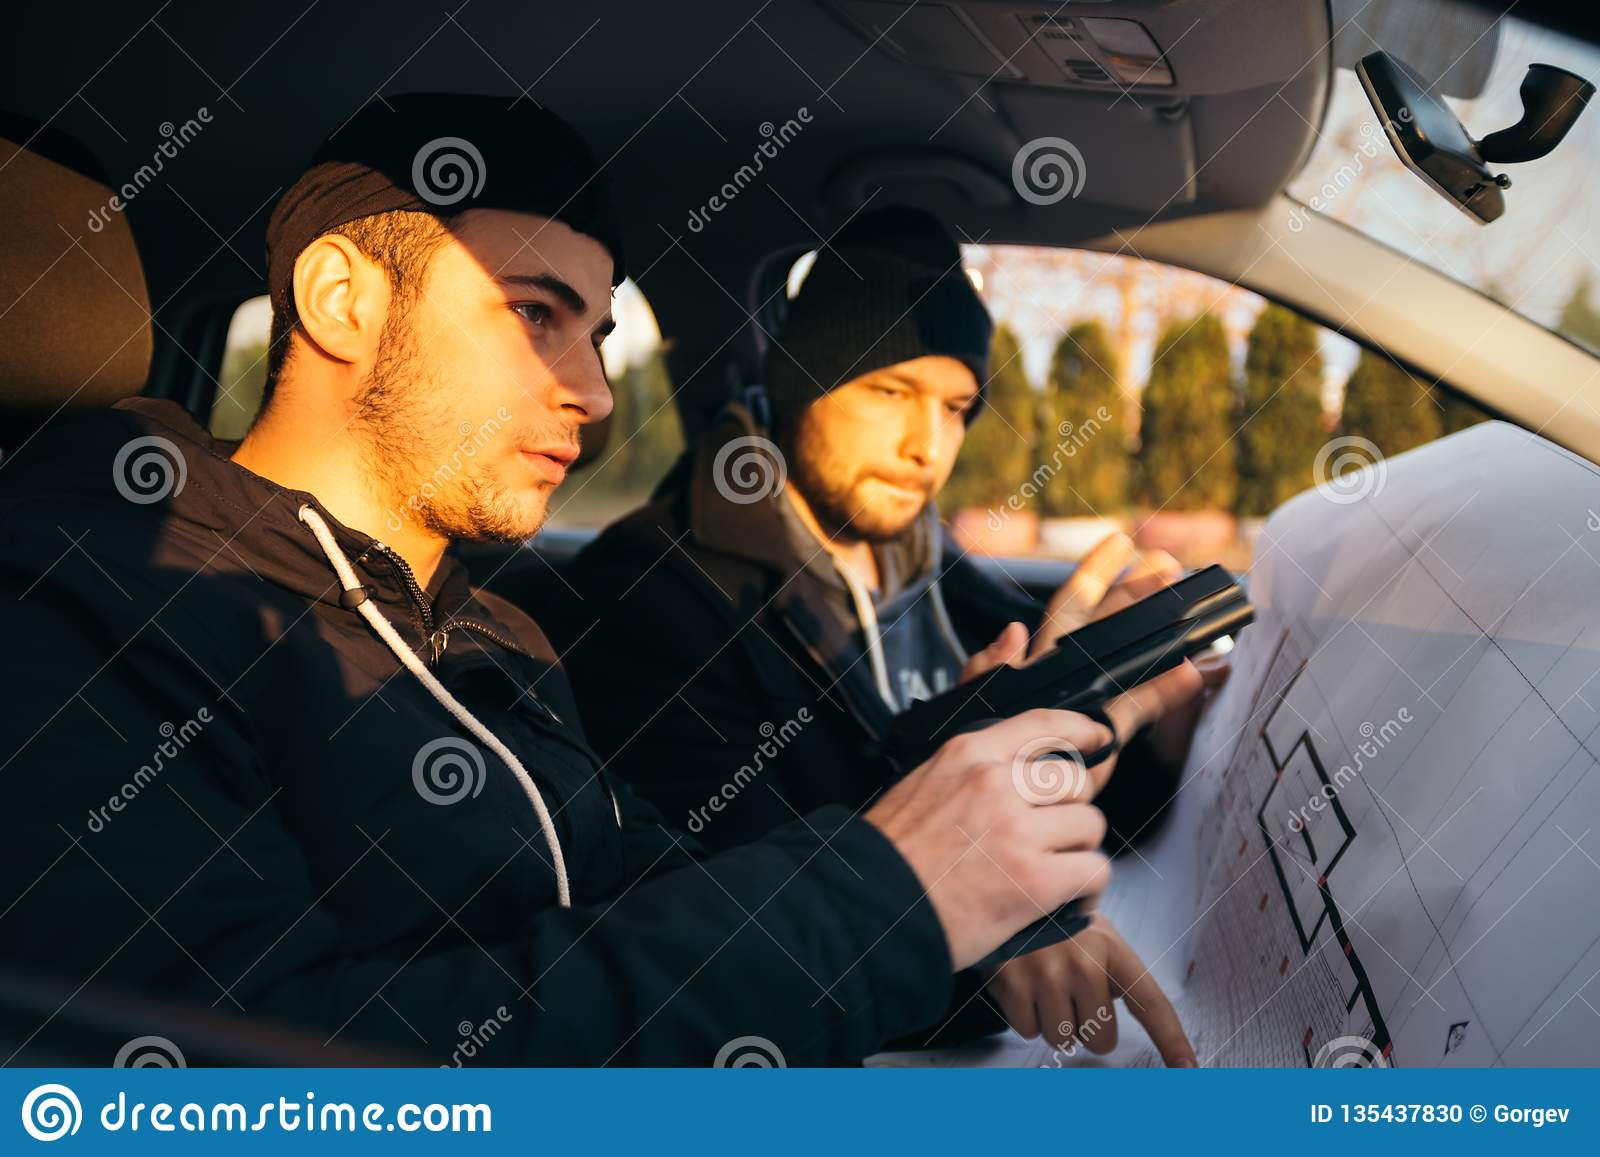 Two Robbers Planning And Pointing On The Blueprint Map Their Objective While Holding Their Guns